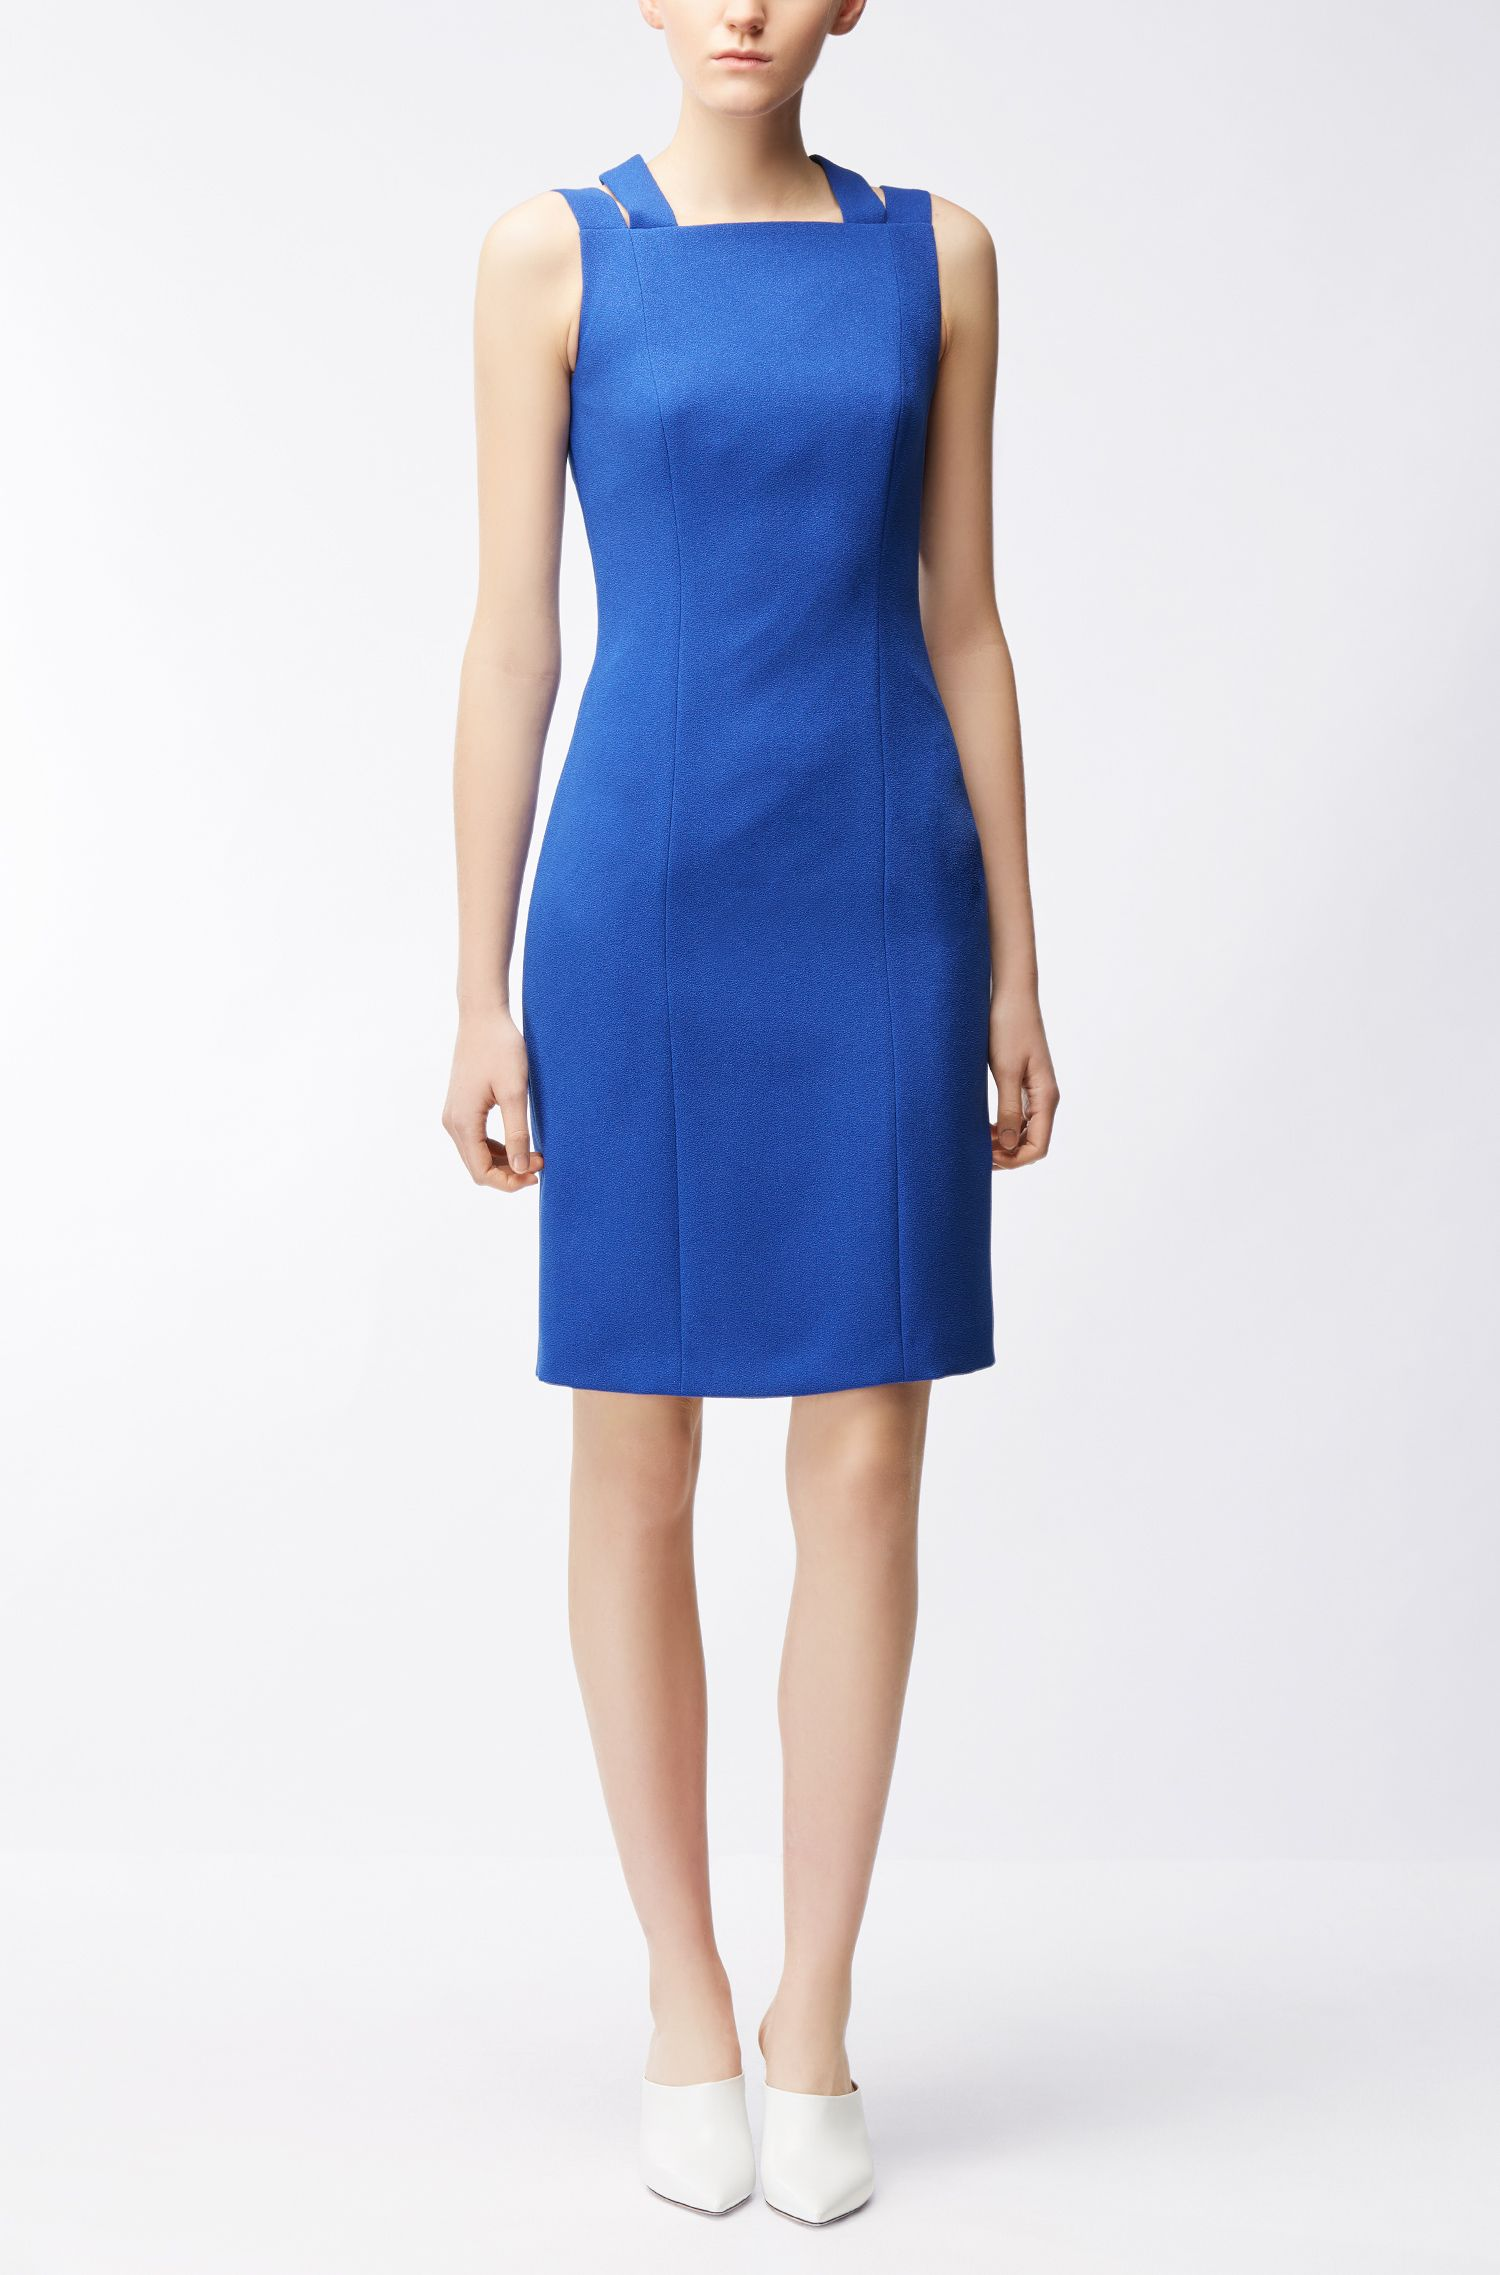 Tailored crinkle-crepe dress with crossed back straps